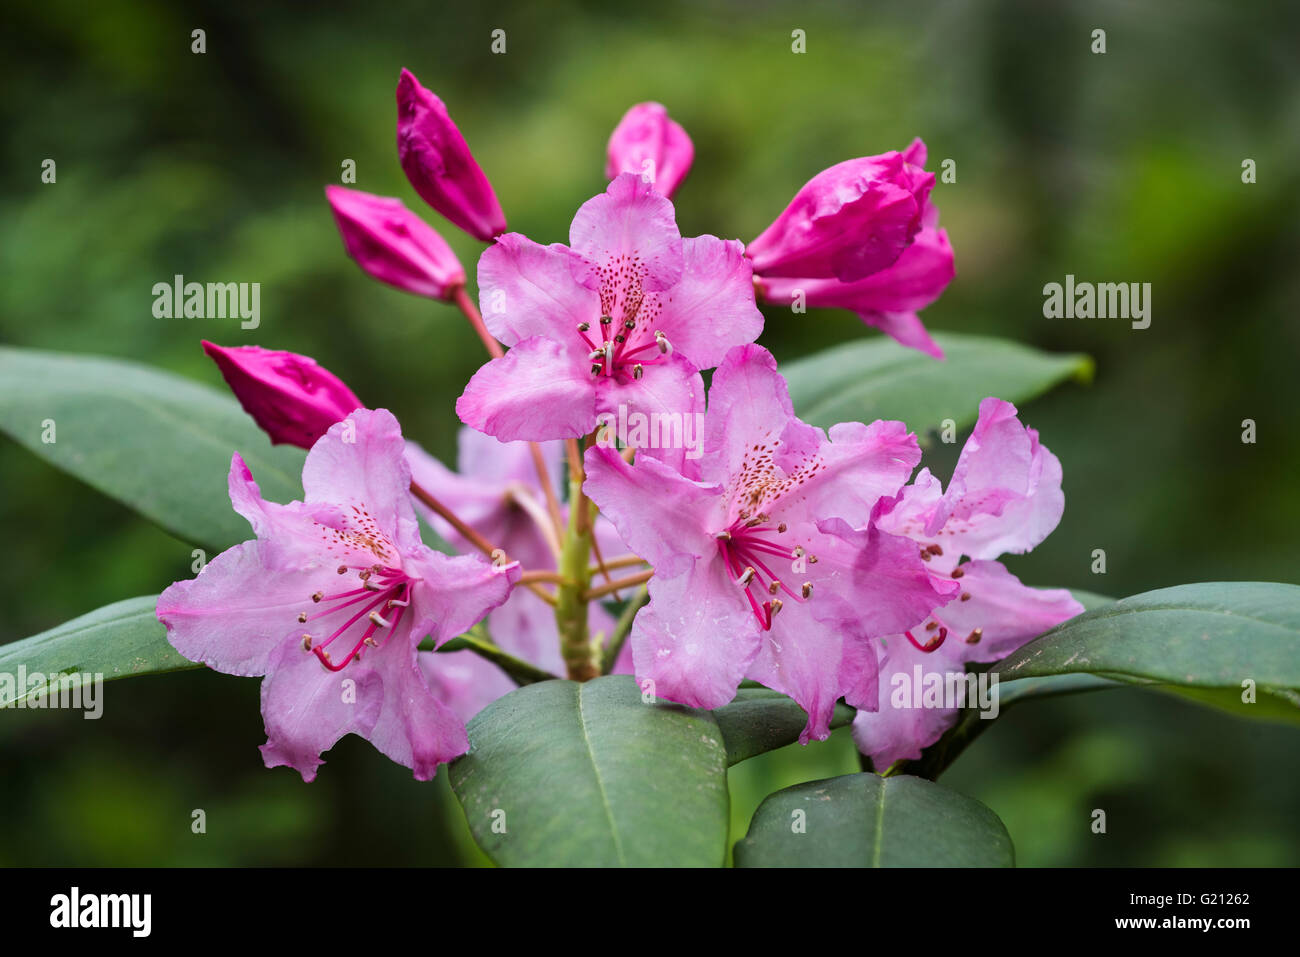 Pacific Rhododendron (Rhododendron macrophyllum) blossom. - Stock Image